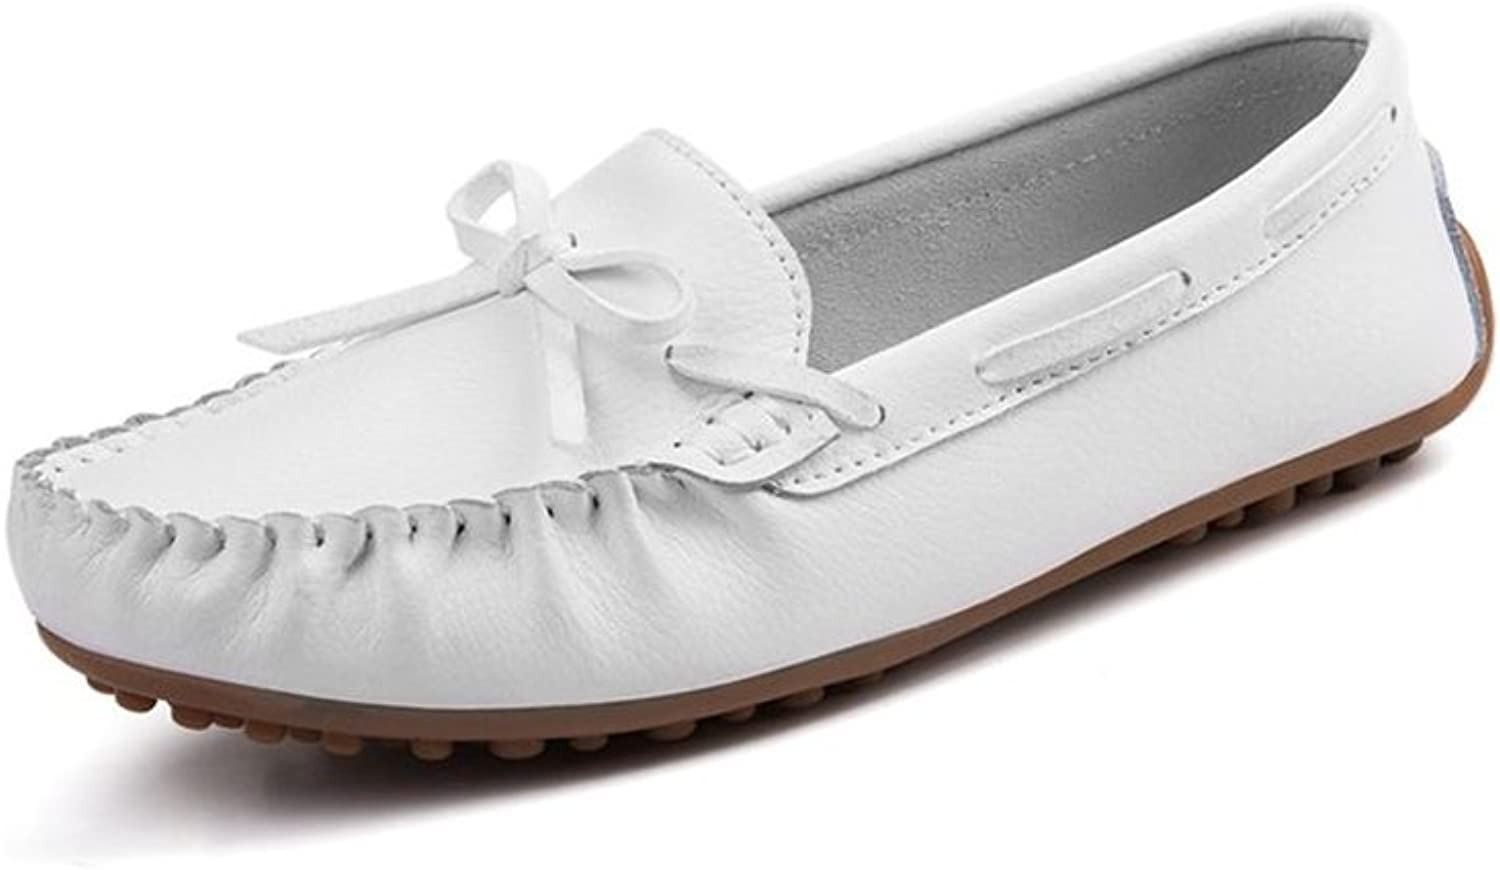 Gusha Non-Slip Flat shoes Comfortable Loafers Casual shoes peas shoes